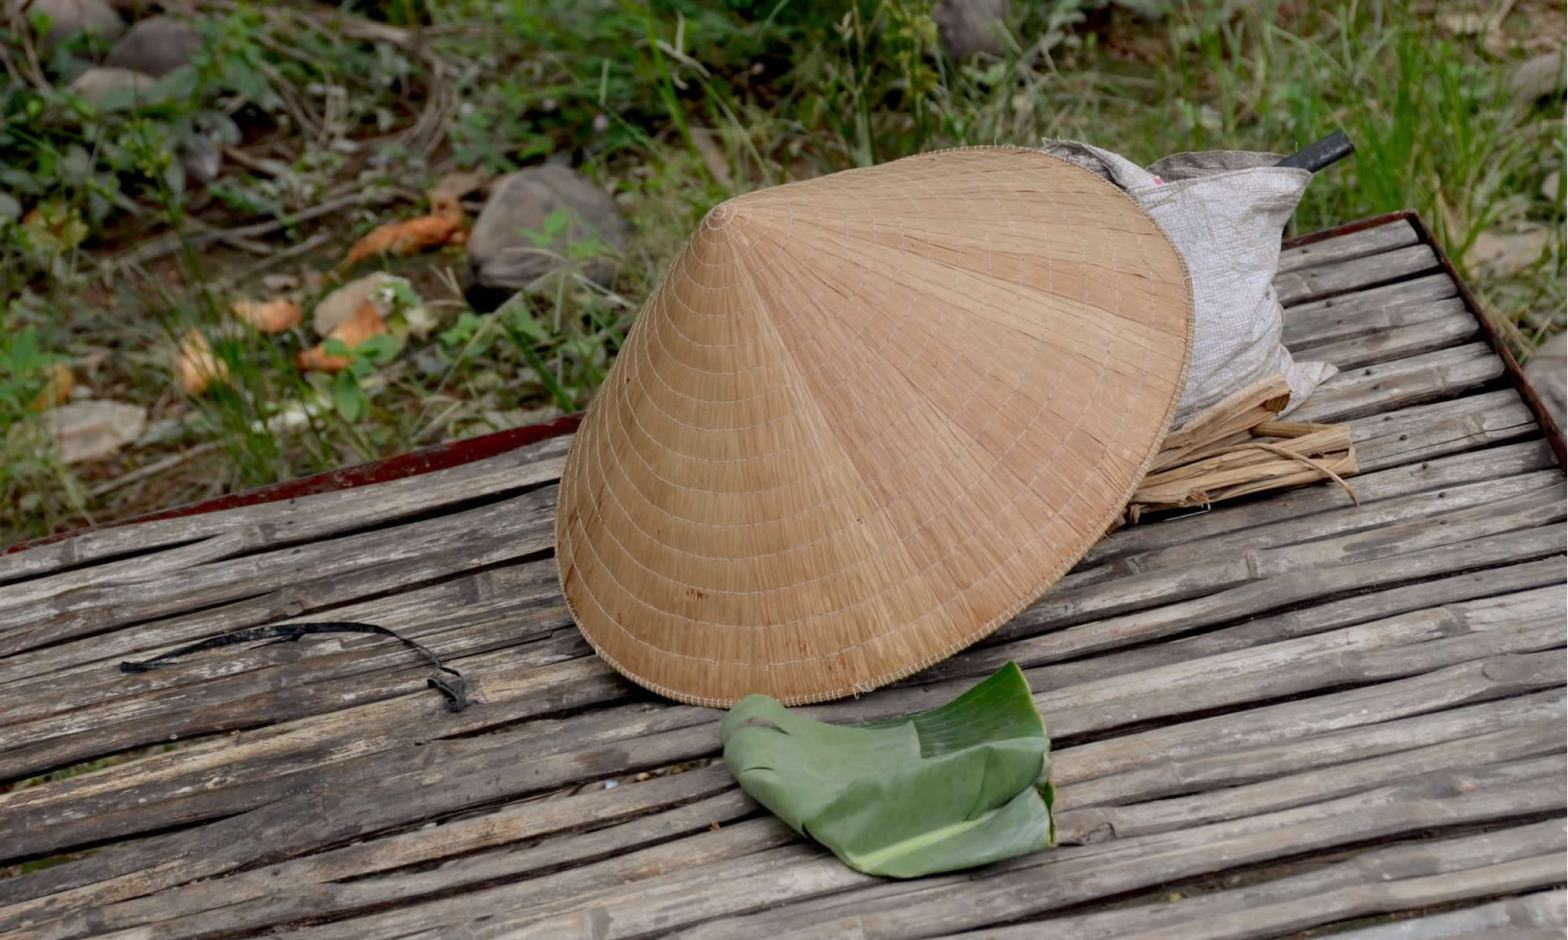 A traditional Vietnamese hat - known as Nón Lá - rests on an outdoor table in Vietnam.